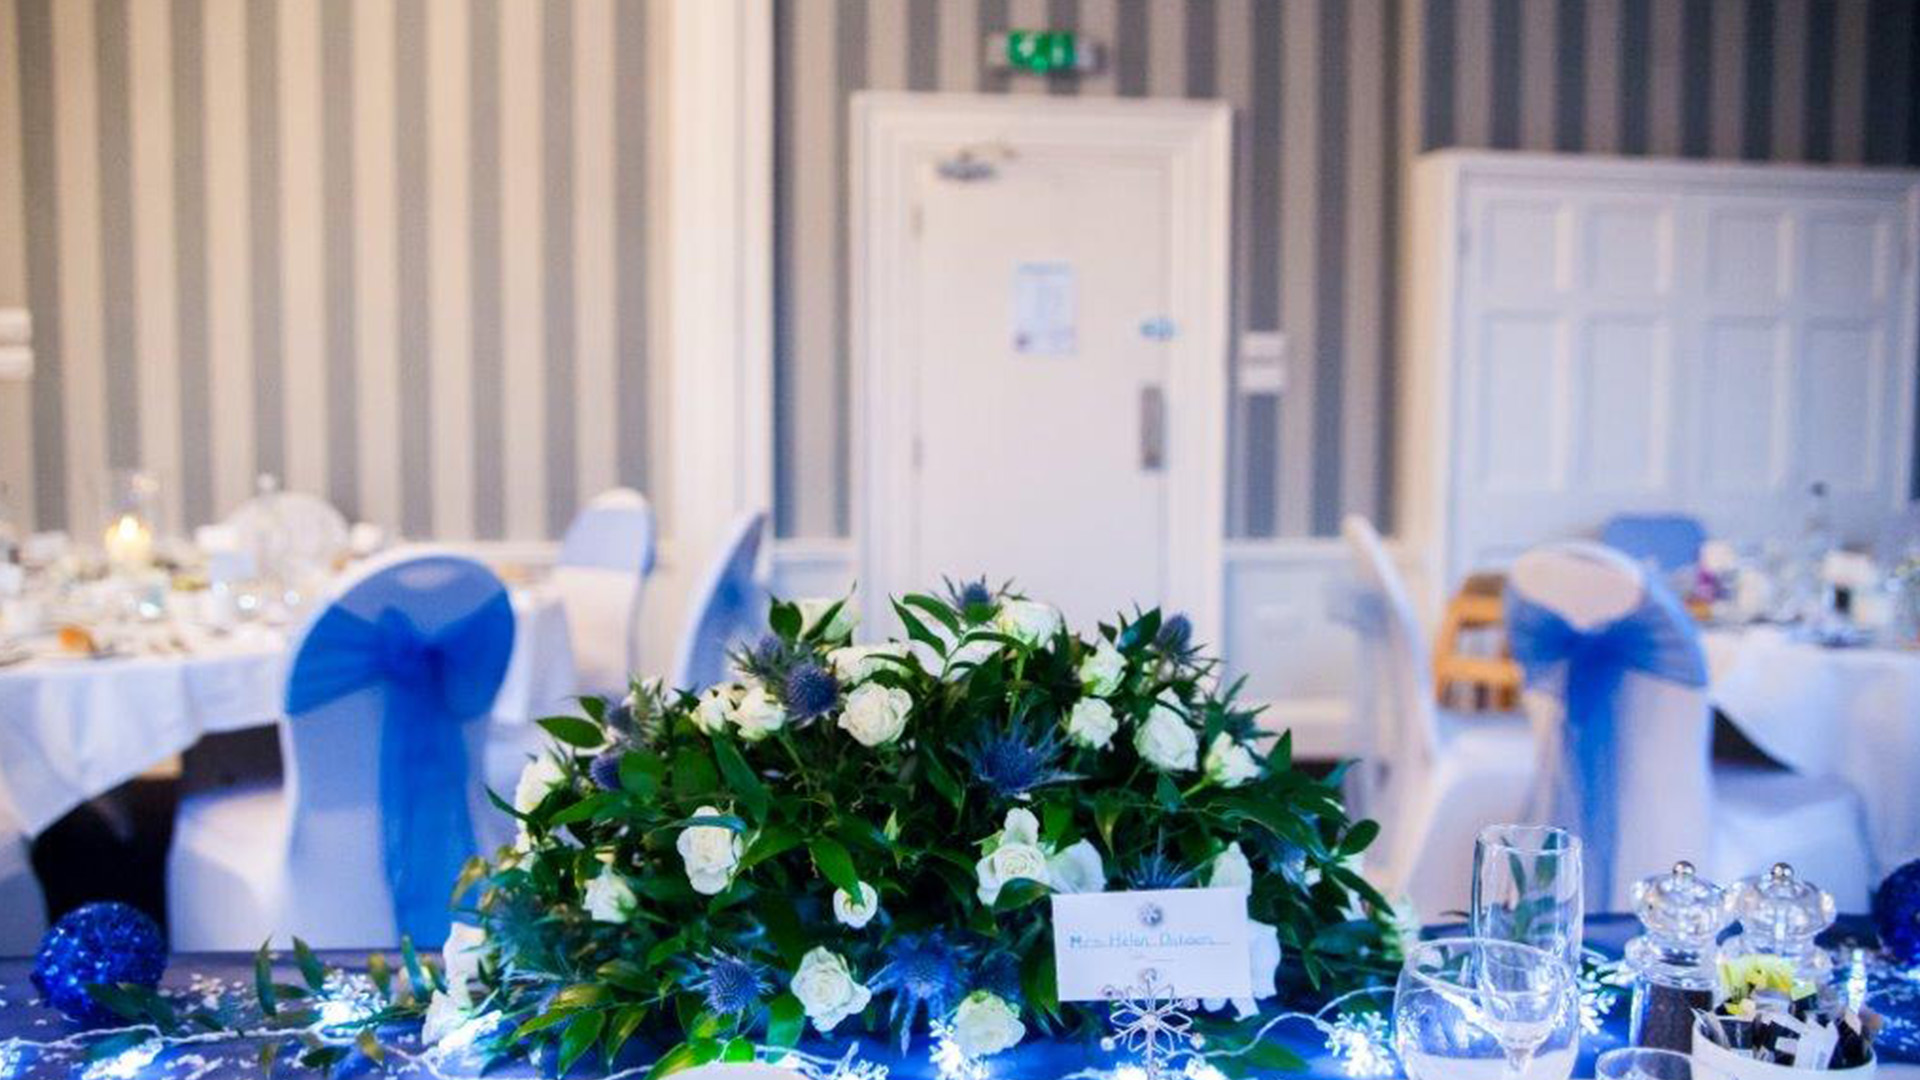 Wedding Venues in Hampshire Mercure Southampton Centre Dolphin Hotel winter wedding venues 5